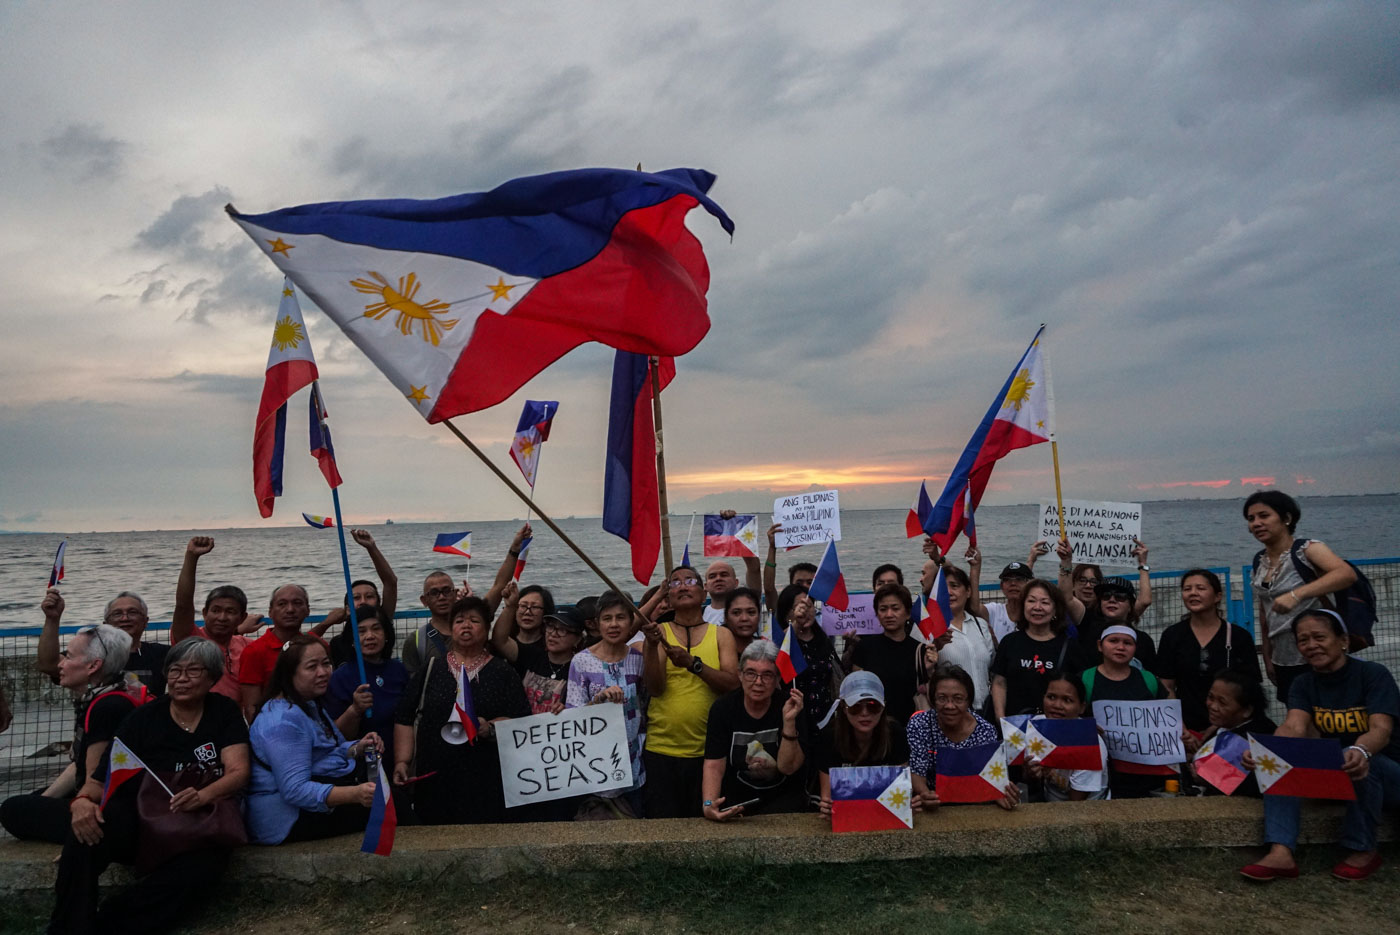 DEFENDING SOVEREIGNTY. Various groups wave Philippine flags along Manila Bay as they show solidarity for the Philippines and resistance against China during a protest on June 22, 2019. Photo by Lito Borras/Rappler